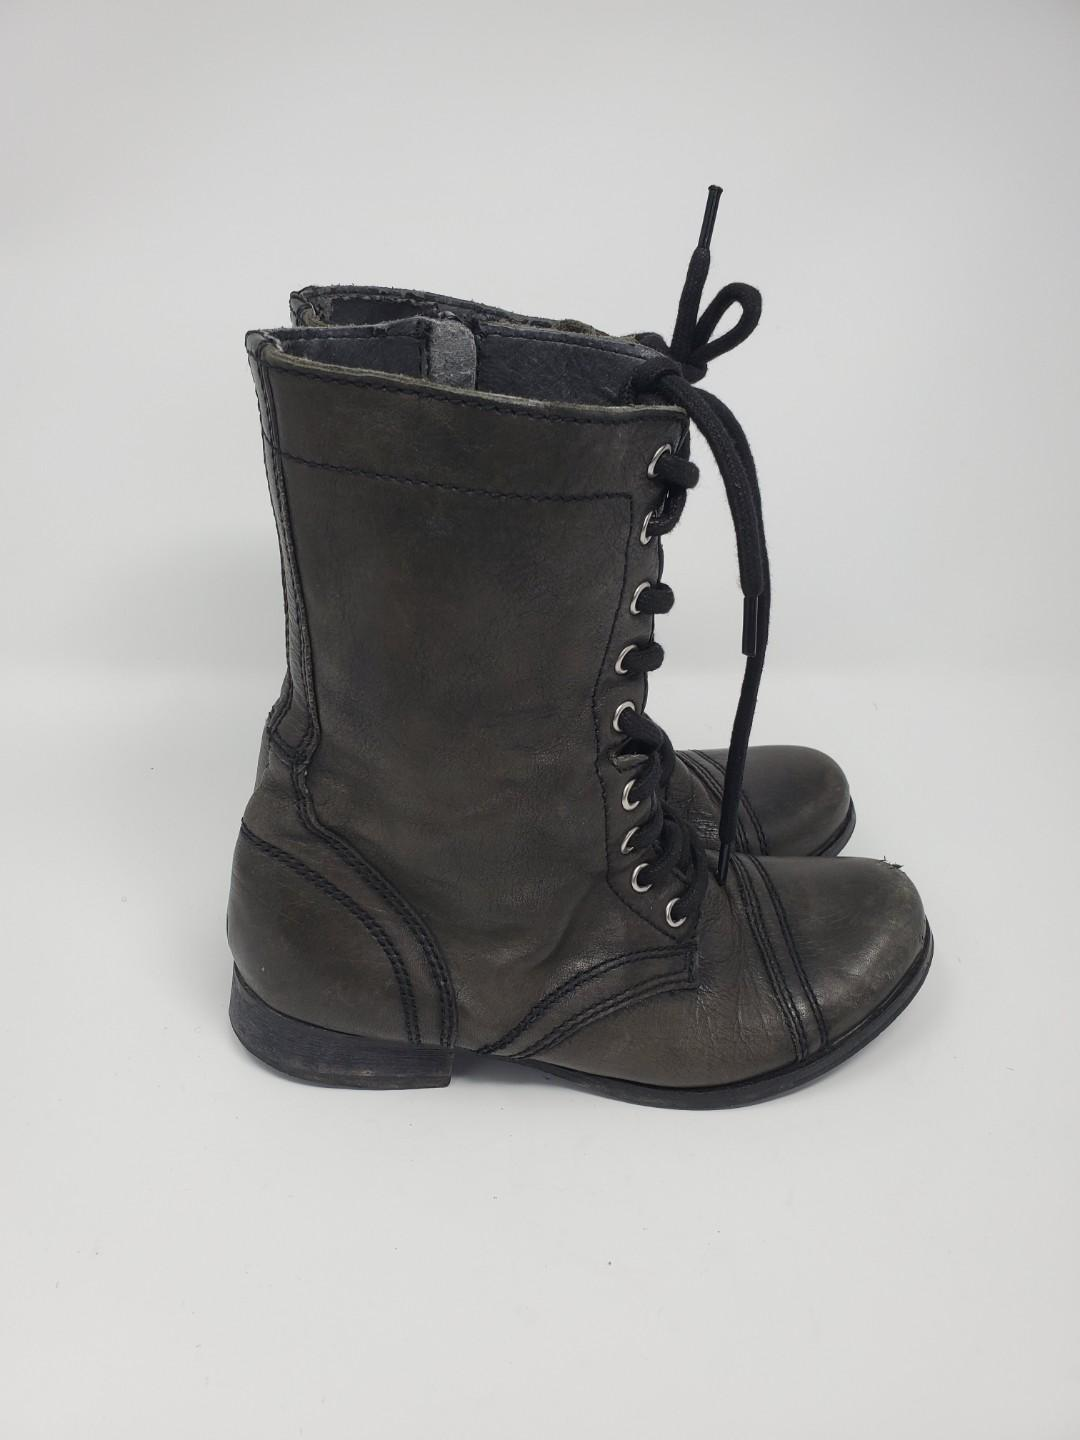 Steve Madden weathered Lace up combat boots - sz 6.5